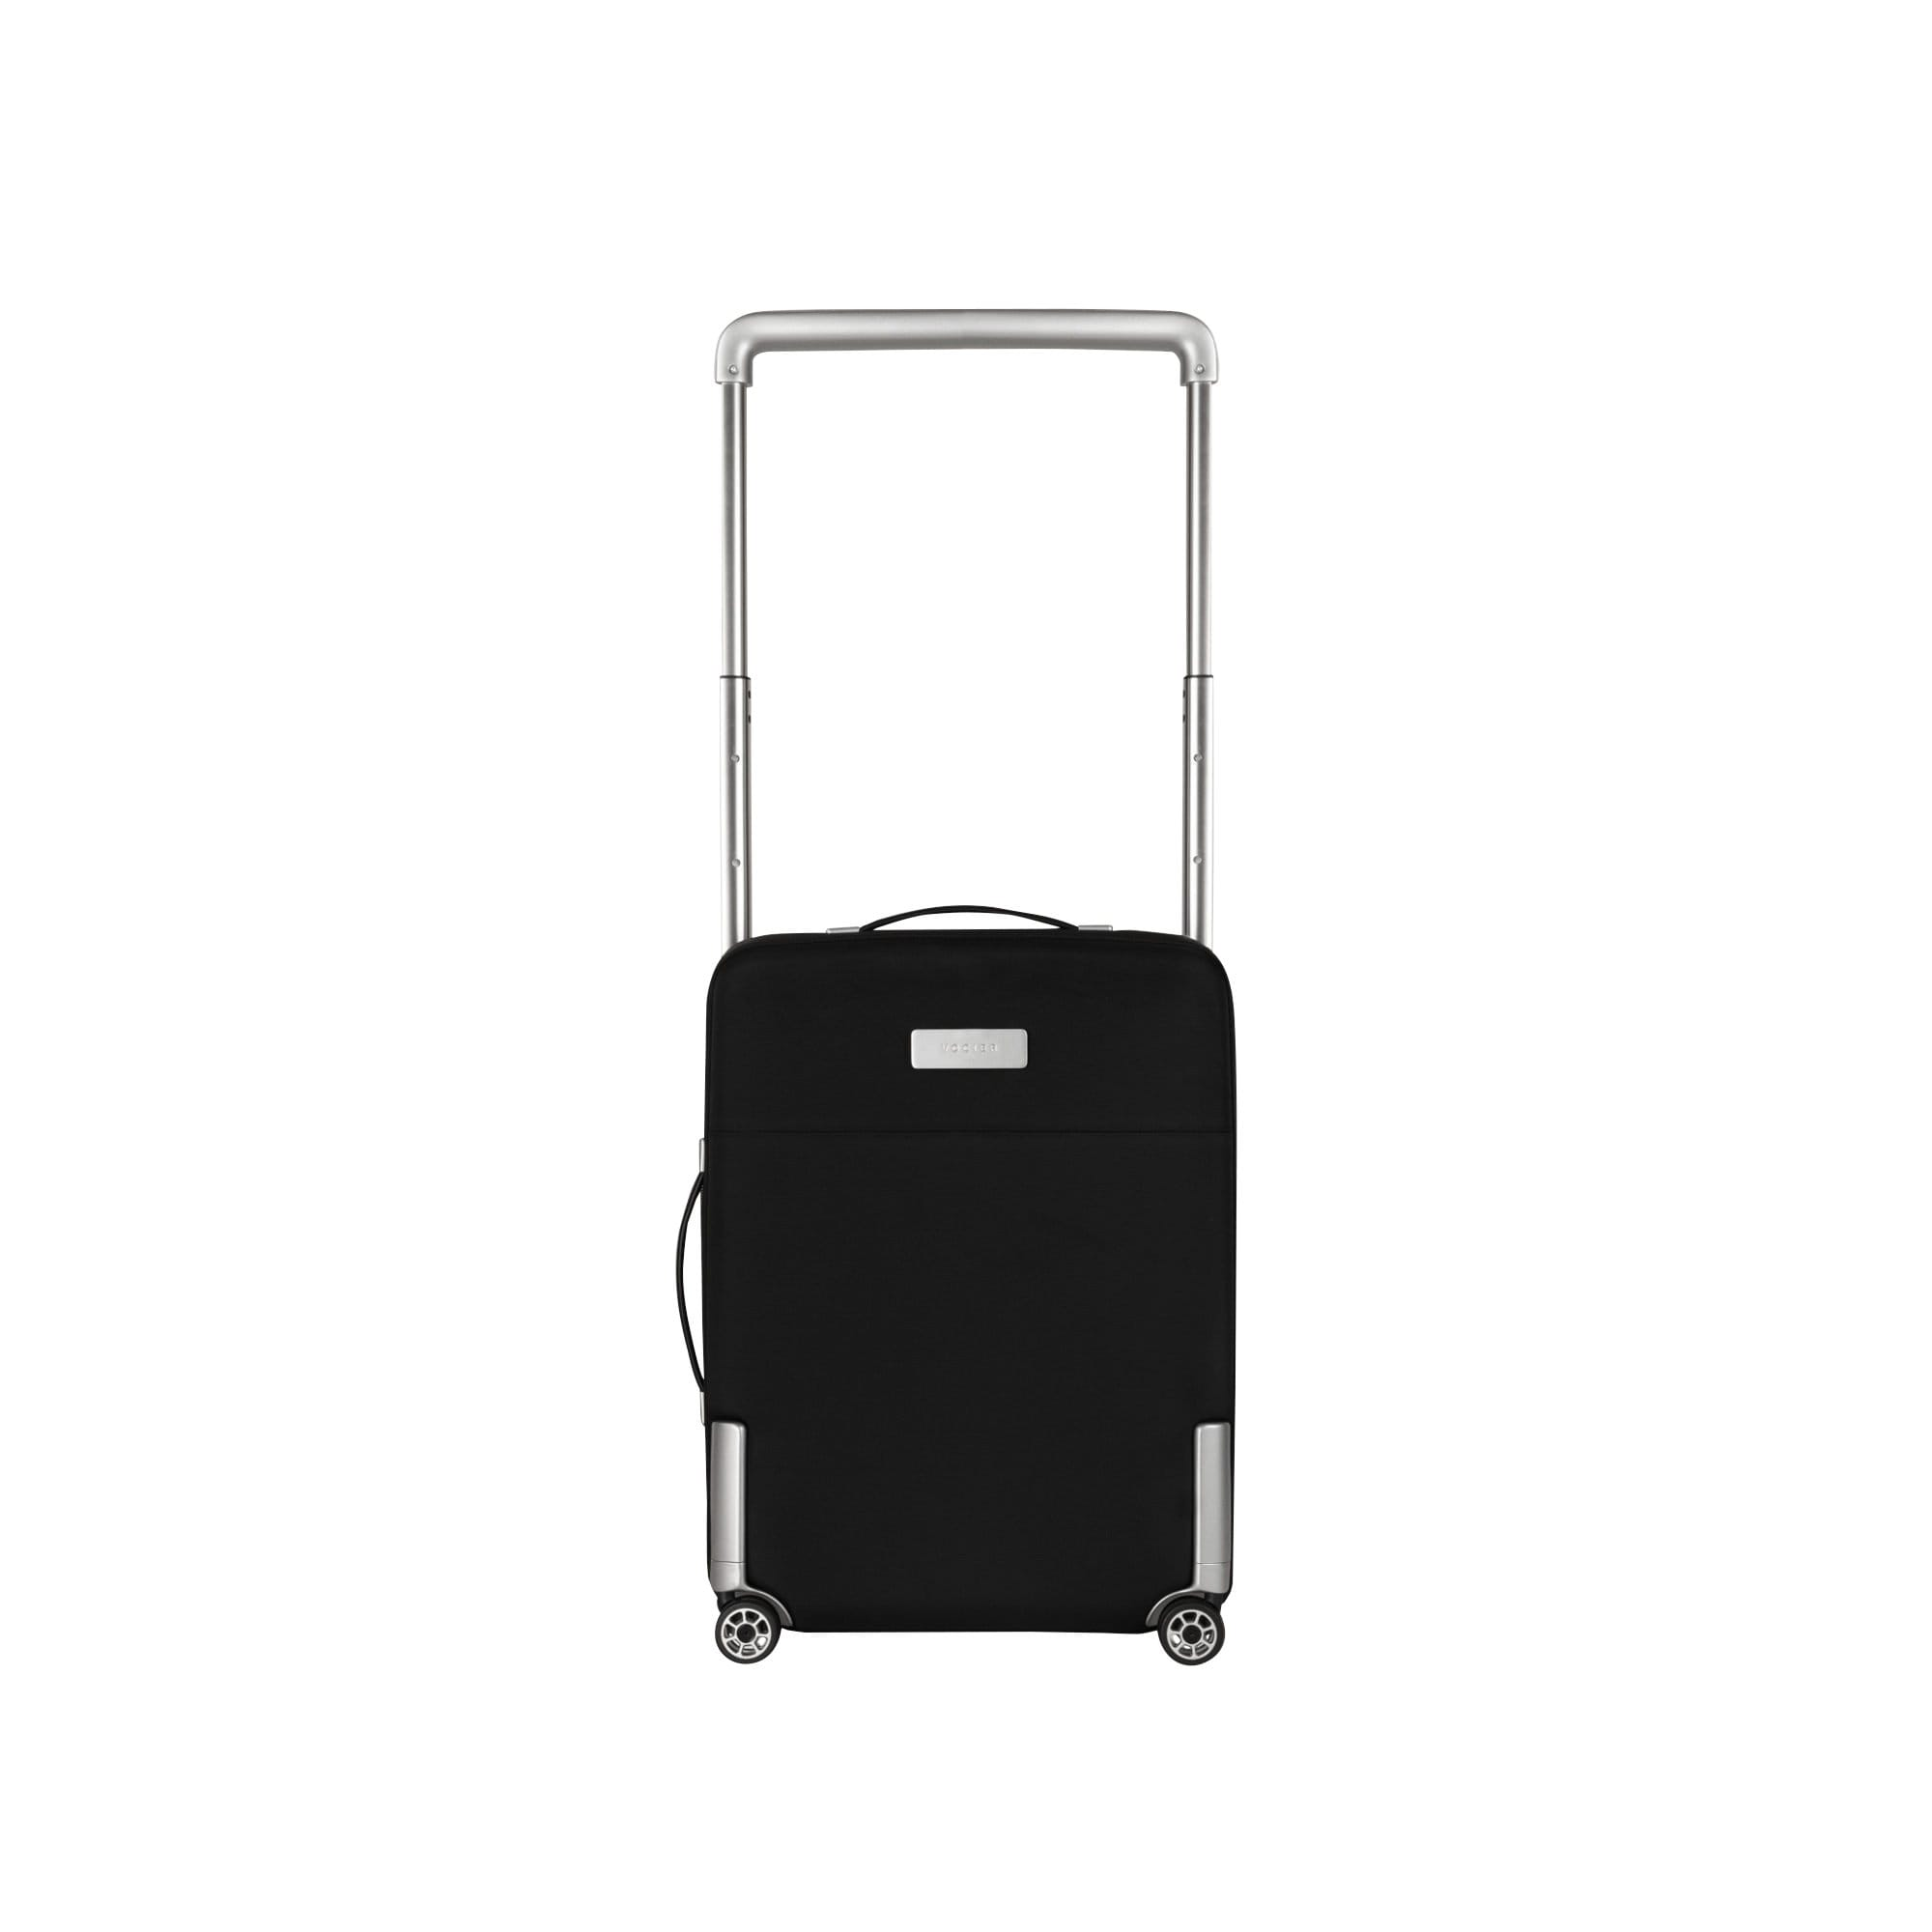 Vocier Luggage Avant carry-on luggage special offer